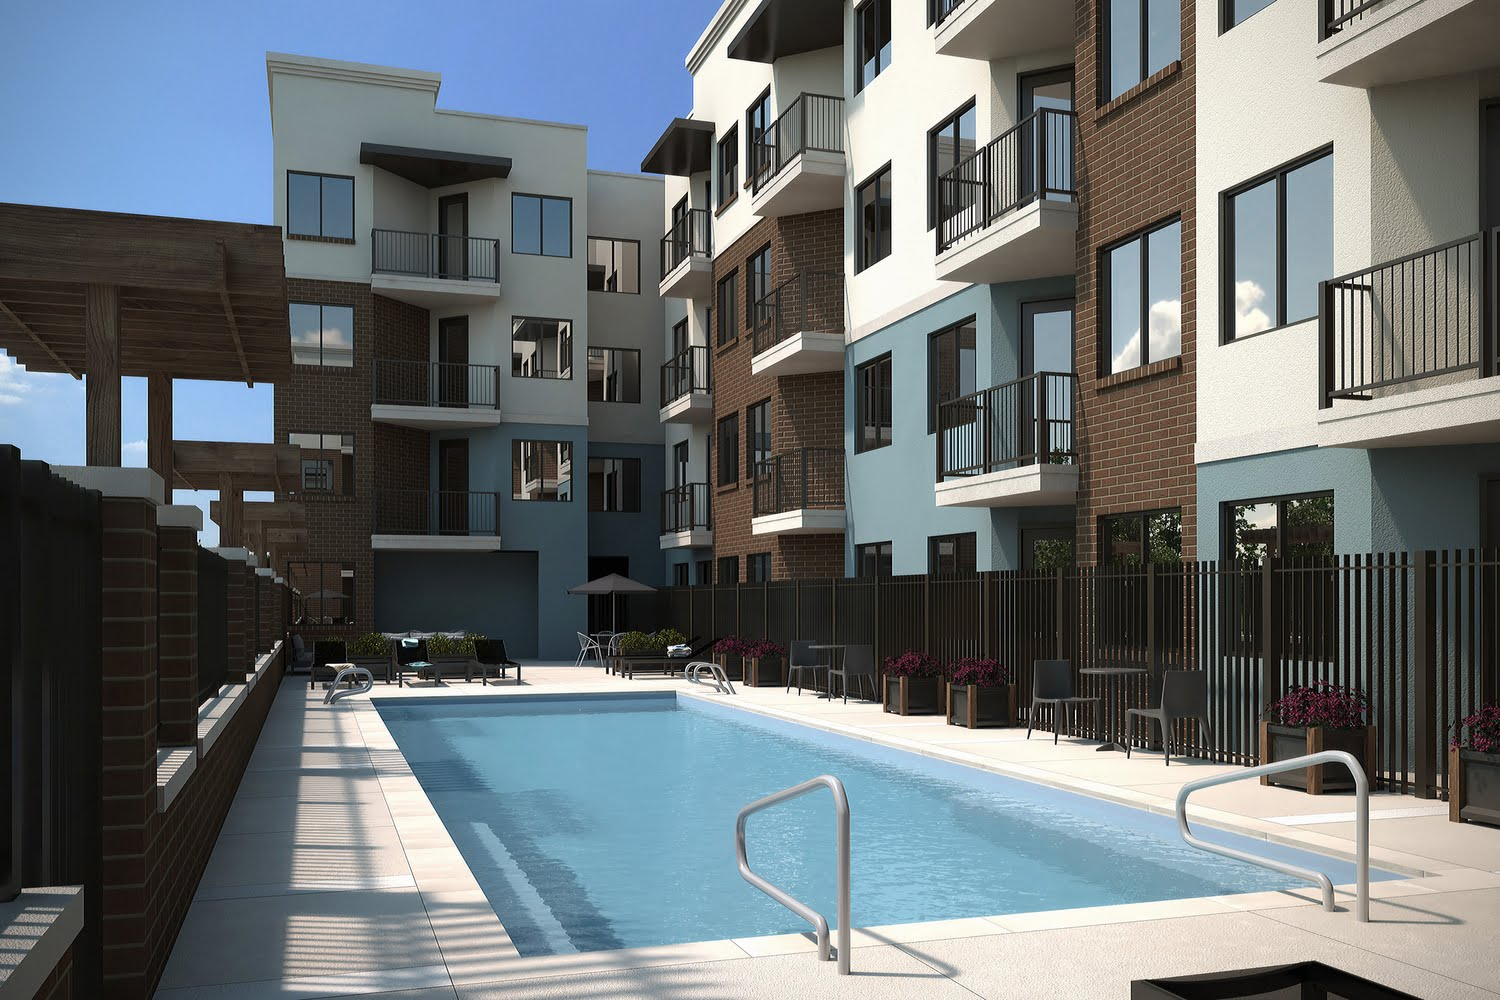 North temple flats apartments in salt lake city utah for 1 bedroom apartments in salt lake city